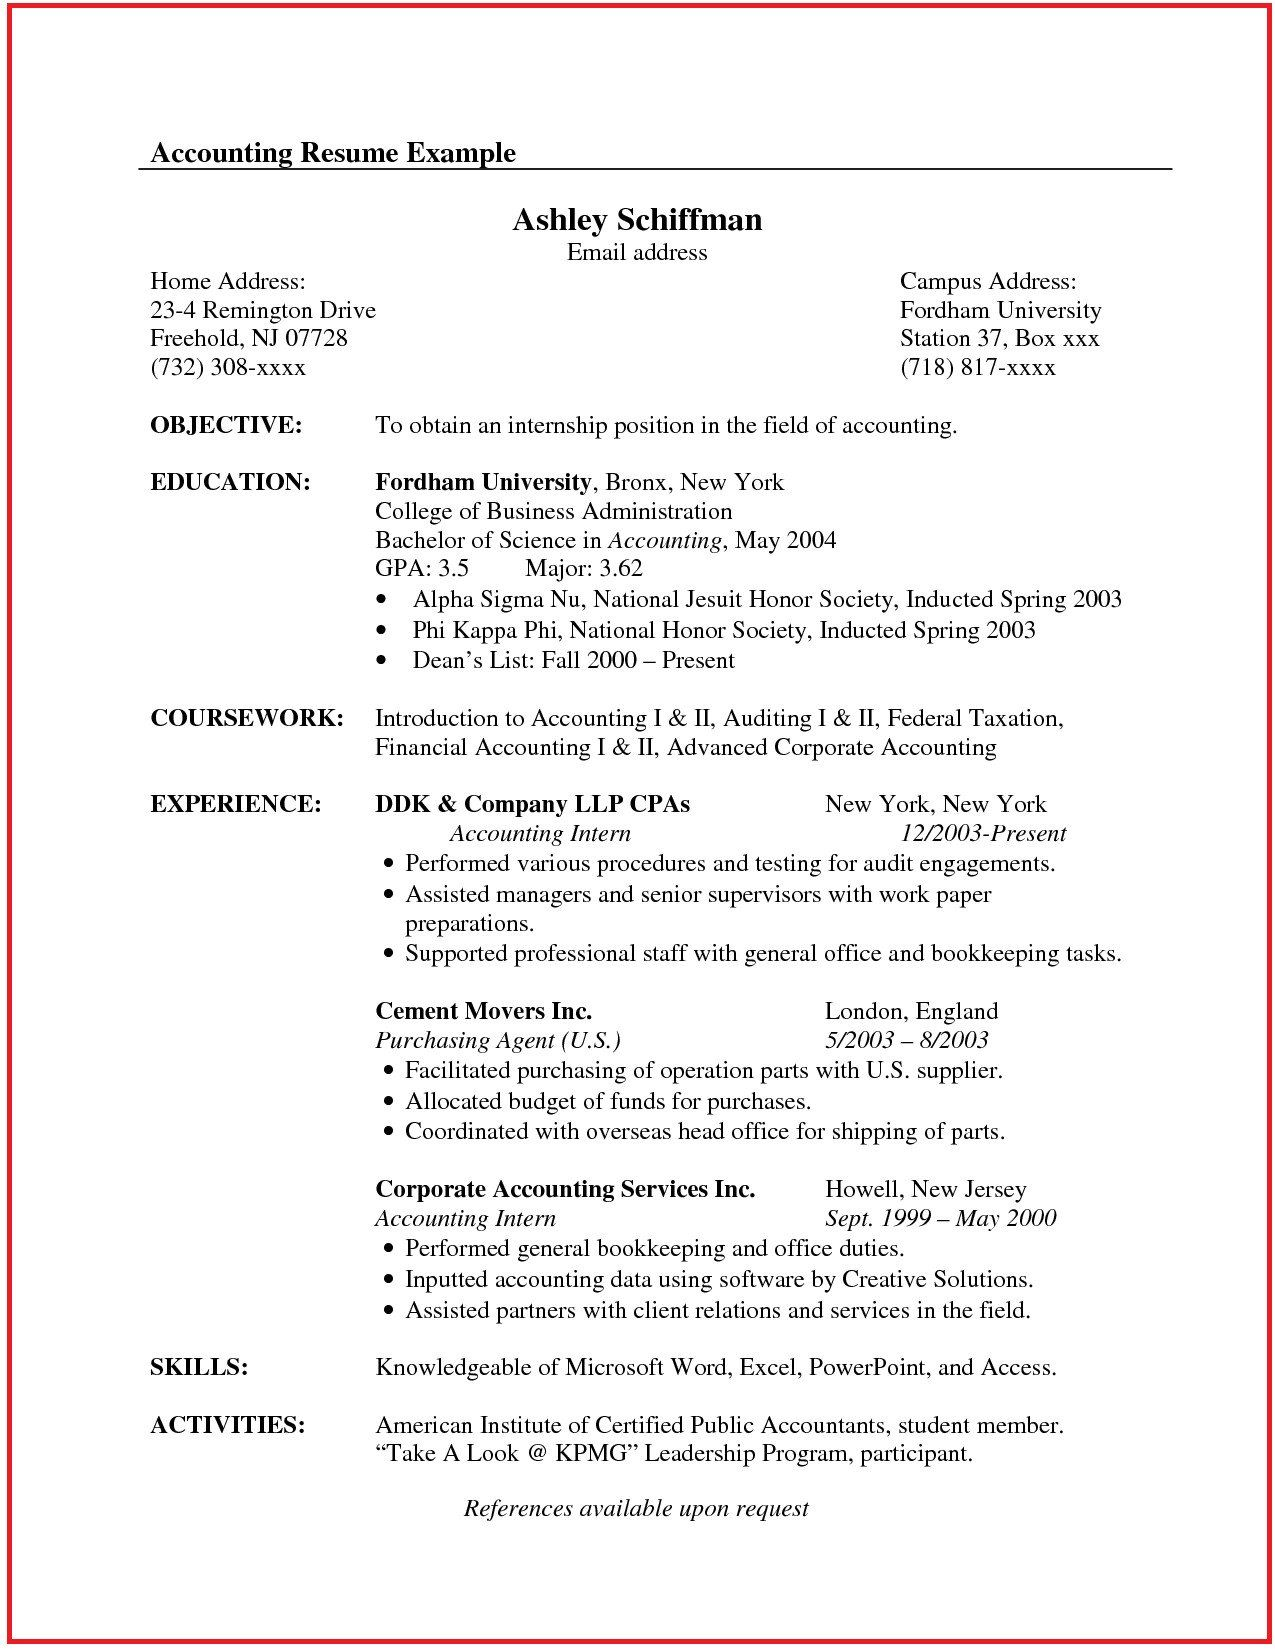 shipping and receiving resume objective examples technical support big data consultant Resume Shipping And Receiving Resume Objective Examples